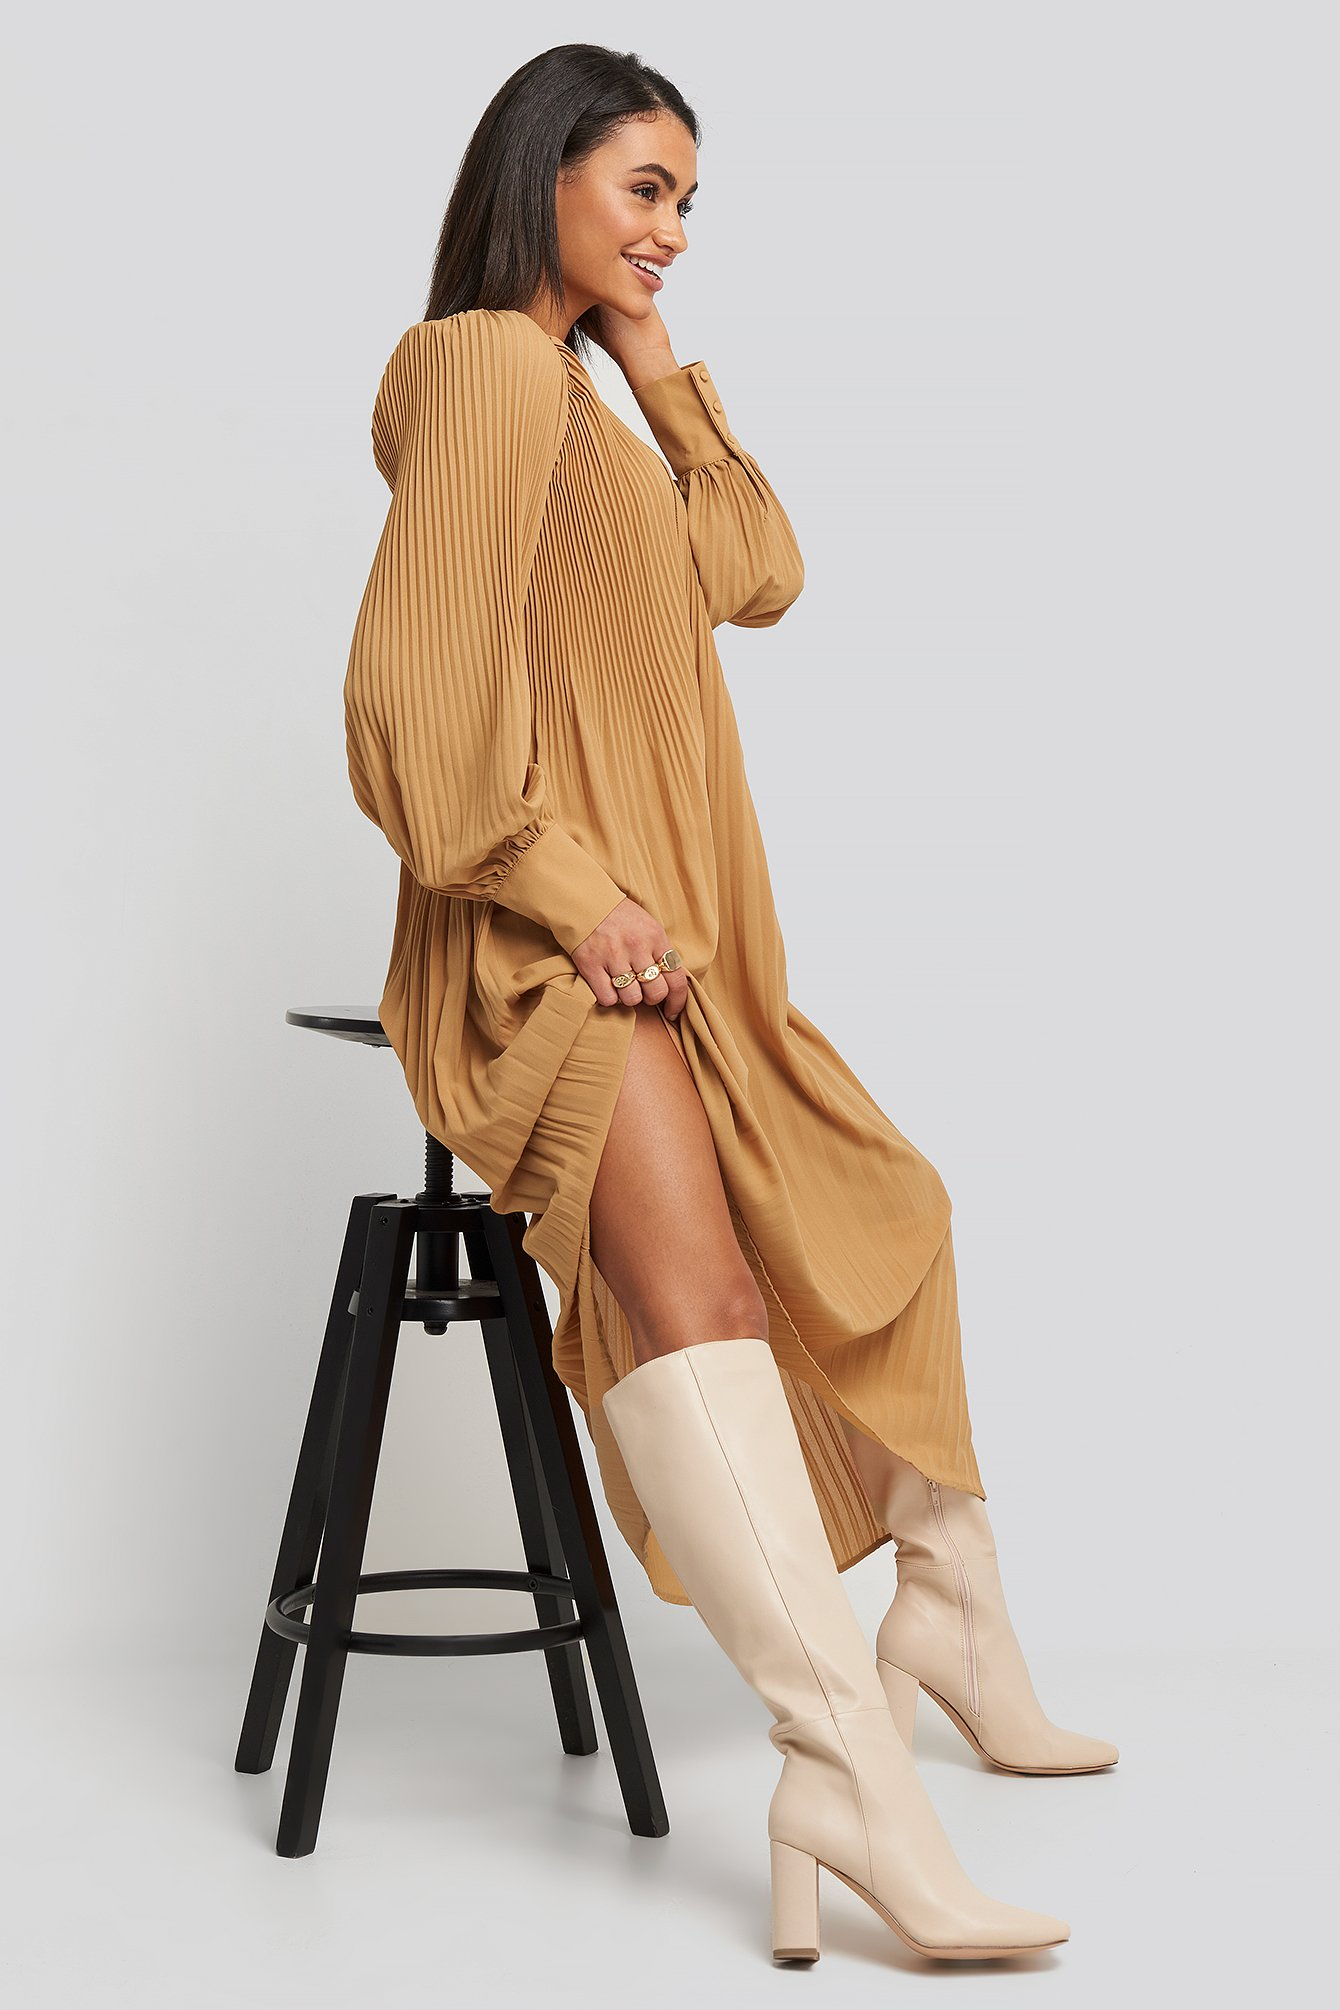 na-kd shoes -  Straight Shaft Knee High Boots - Beige